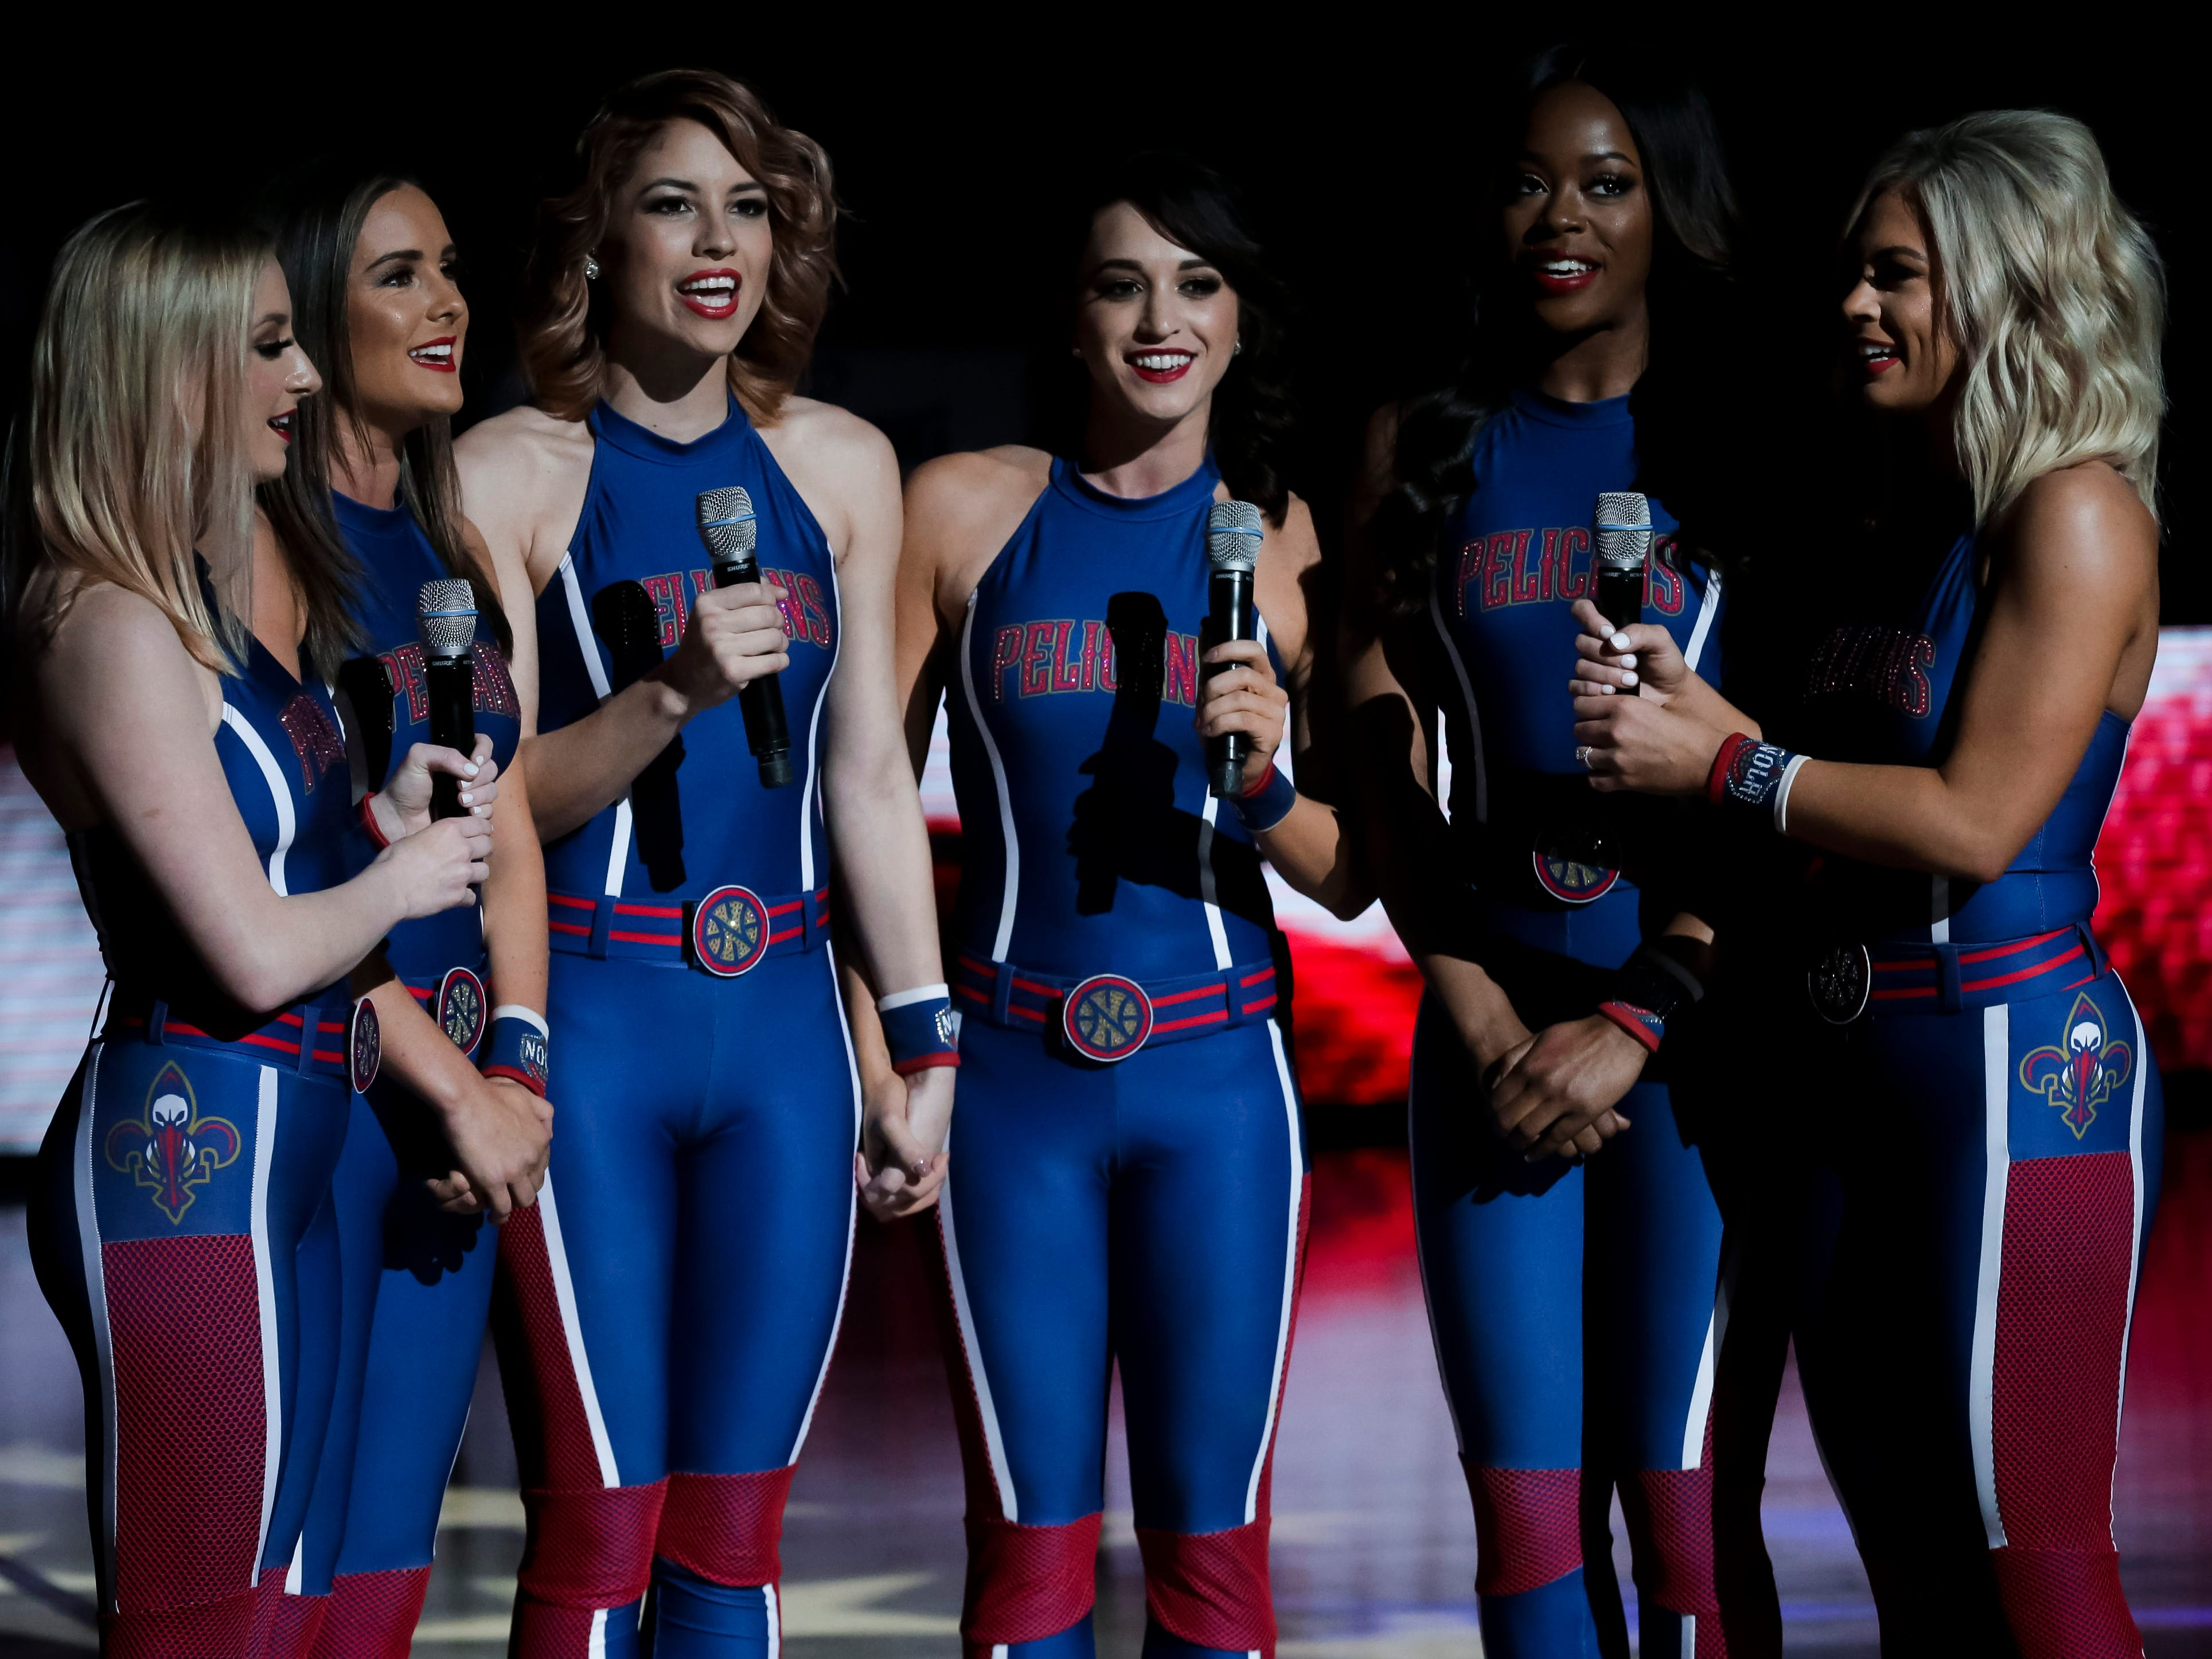 March 24: Members of the Pelicans dance team sing the national anthem before playing the Rockets at the Smoothie King Center in New Orleans.